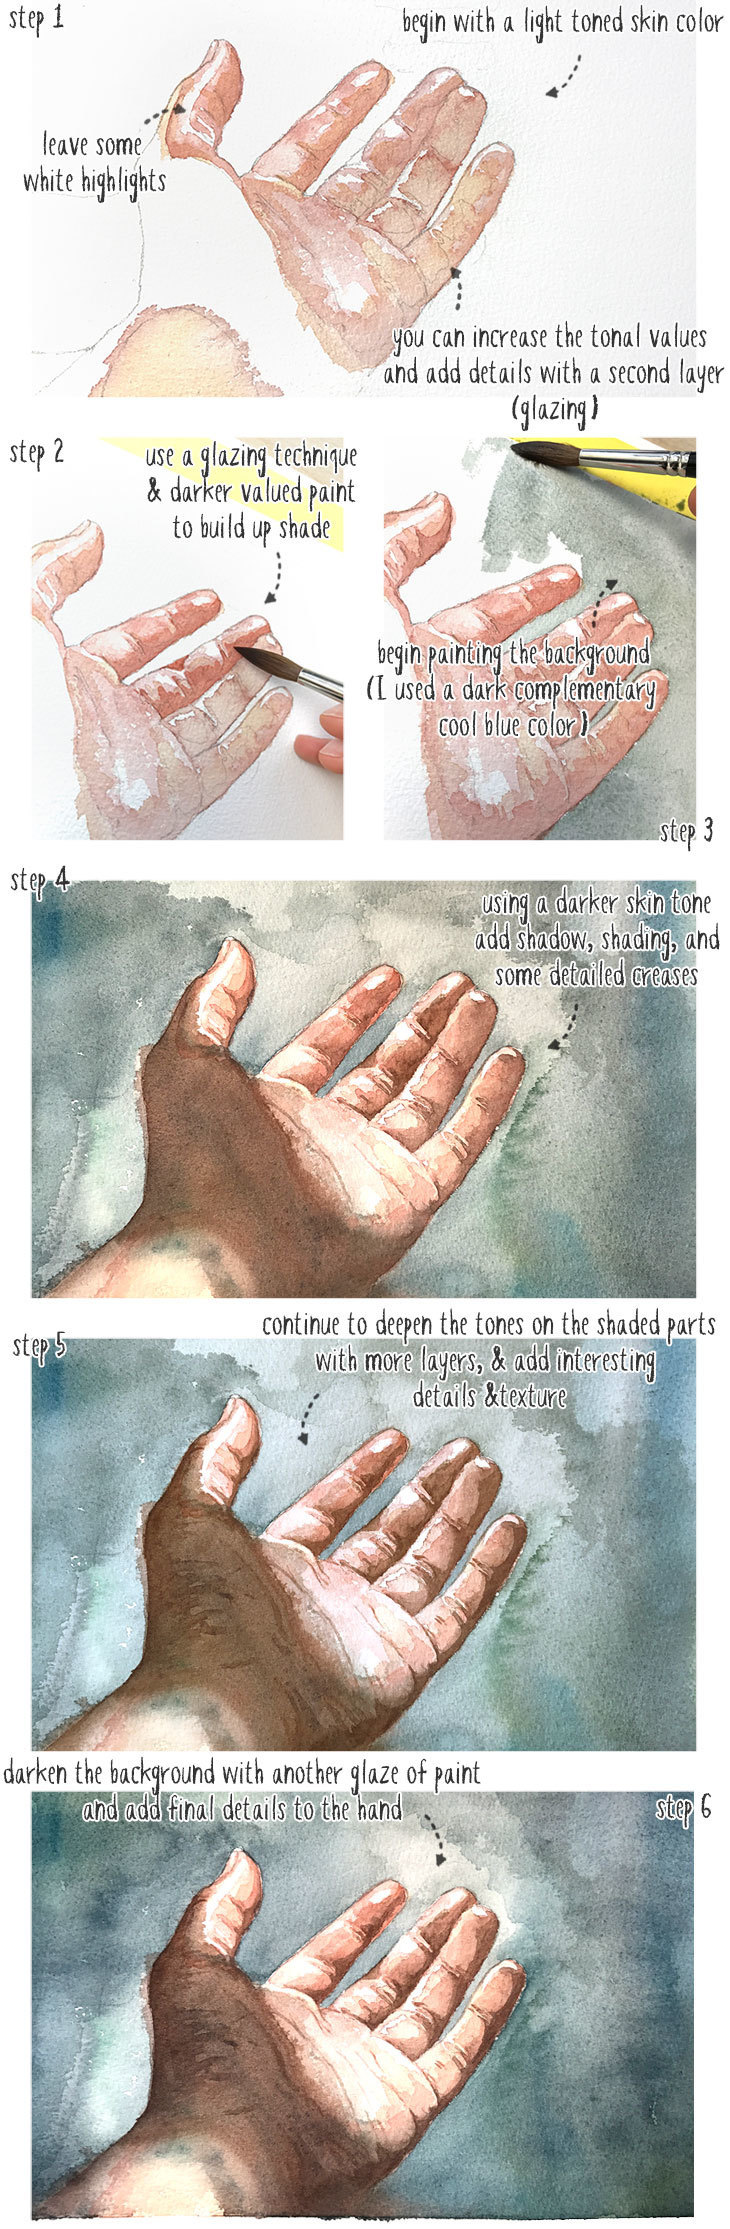 How To Make White Skin Color With Paint : white, color, paint, Watercolor, Tutorial:, Realistic, Flesh, Colors